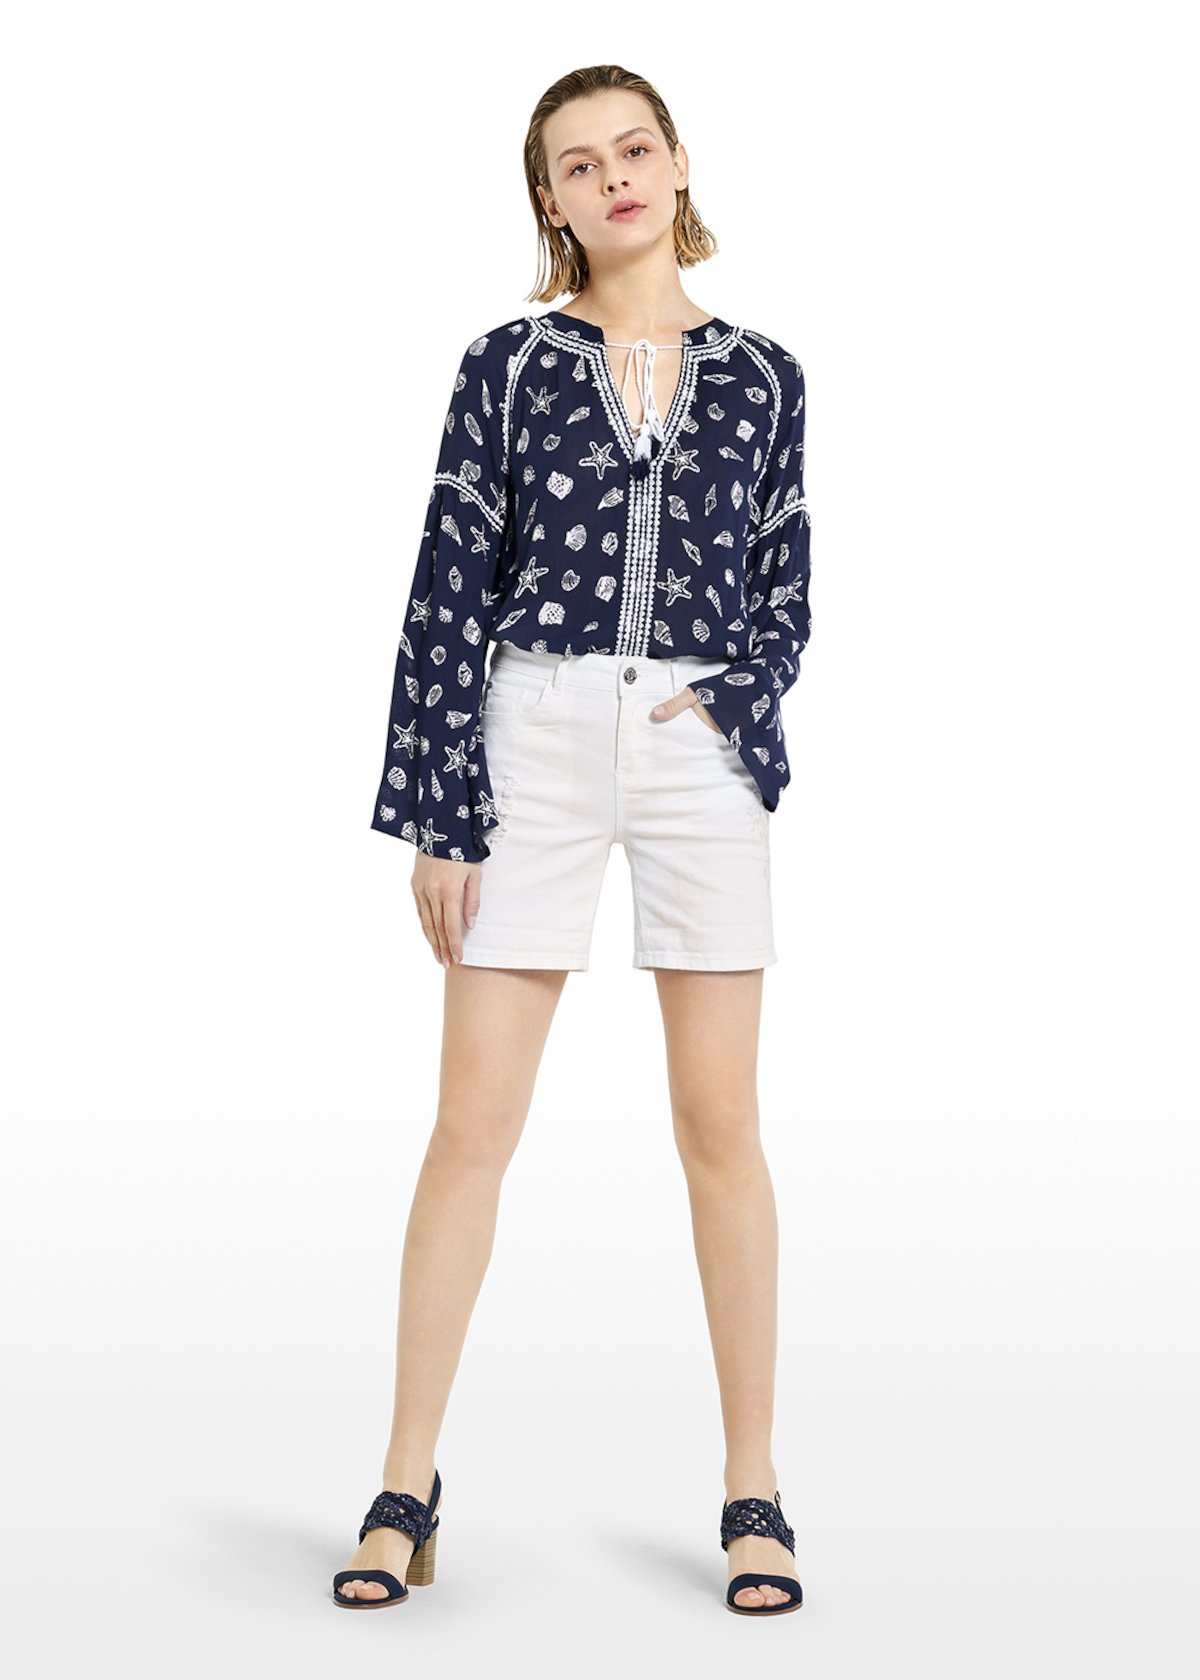 Byron Bermuda shorts with embroidery in tone - White - Woman - Category image